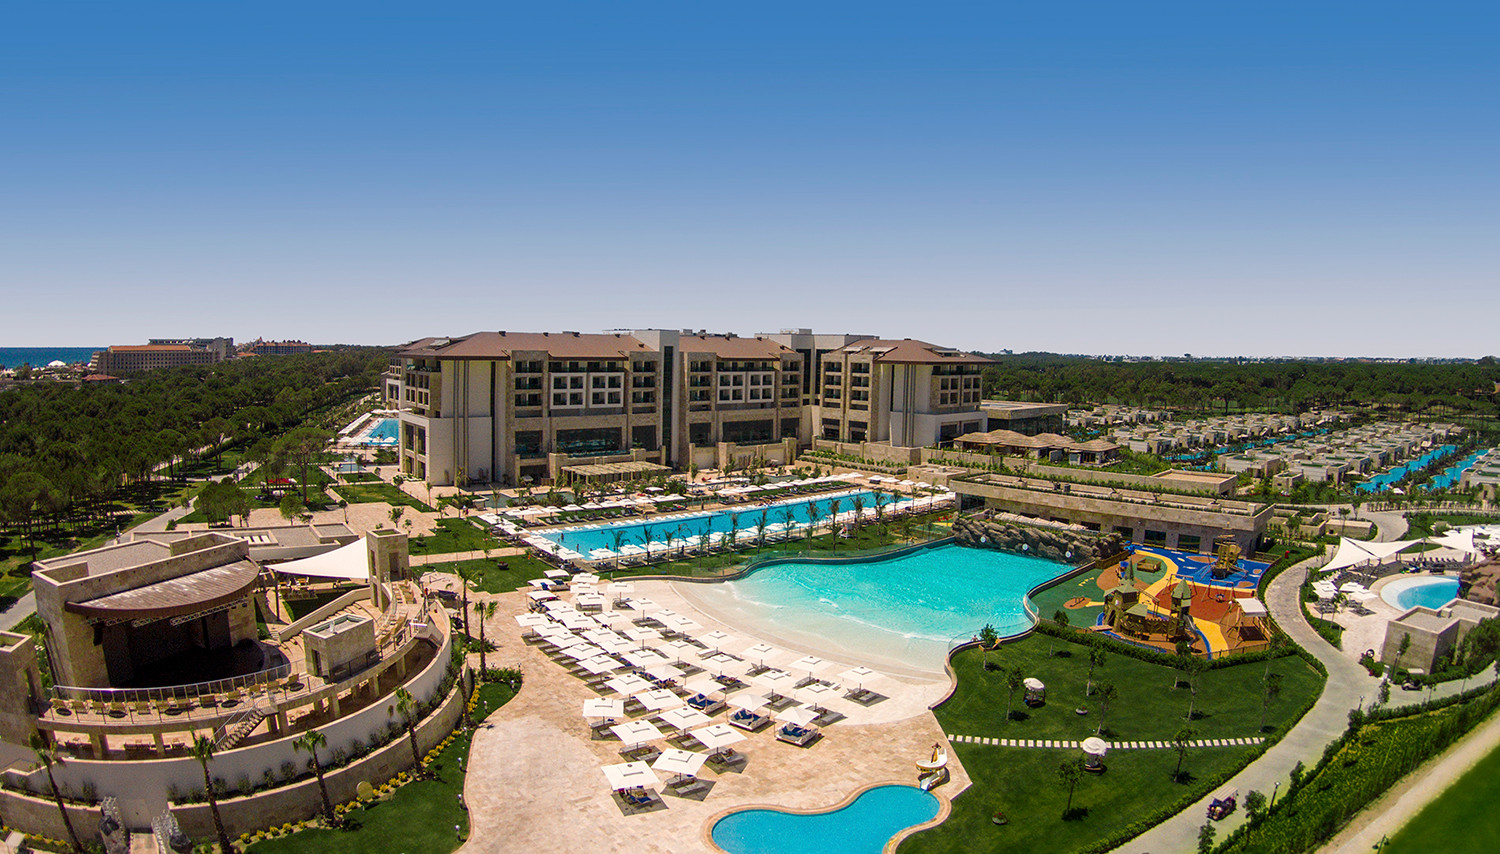 Regnum Carya Golf & SPA Resort (Antālija, Turcija)